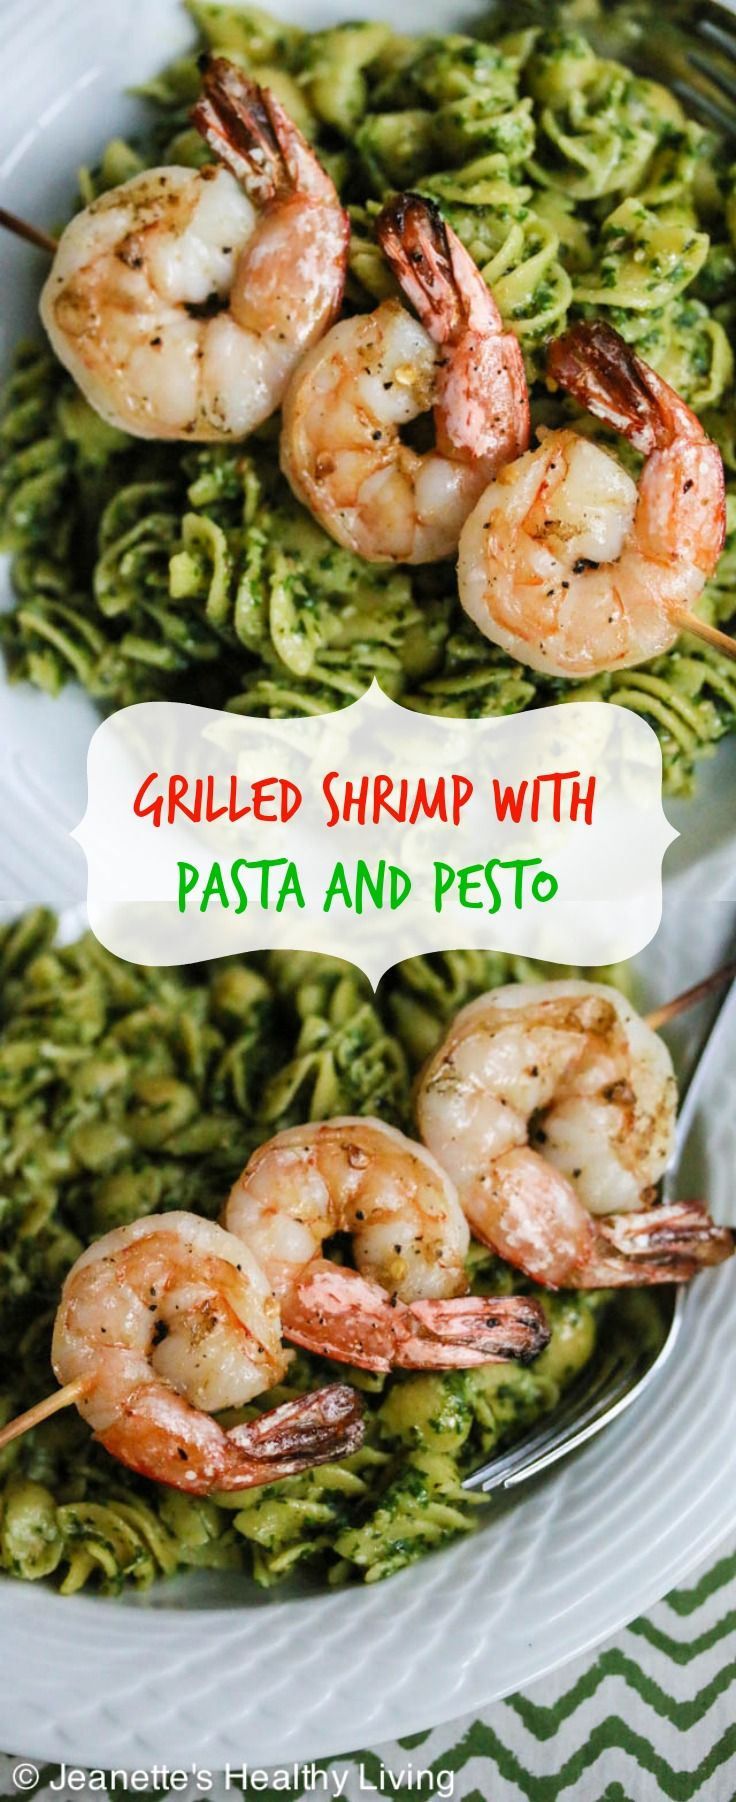 Easy Grilled Garlic Chili Shrimp with Pasta and Pesto via Jeanette's Healthy Living #lowcarb #protein